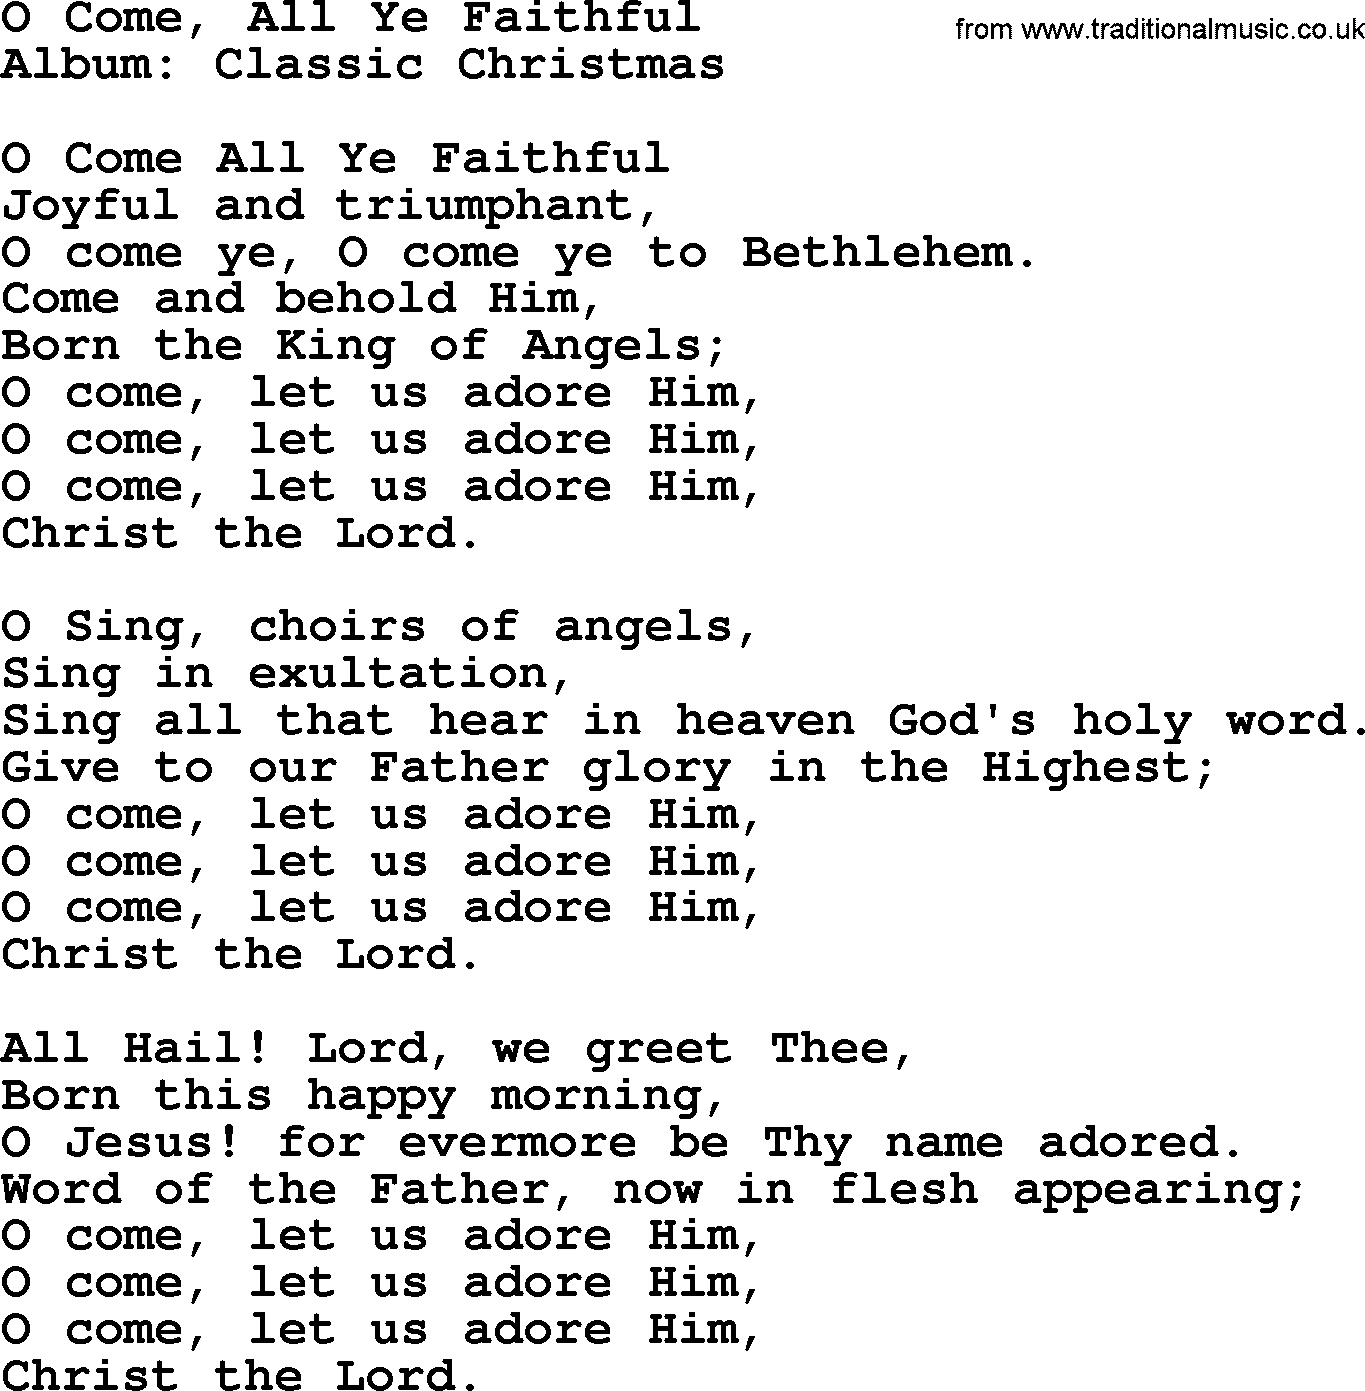 O Come All Ye Faithful By George Strait Lyrics